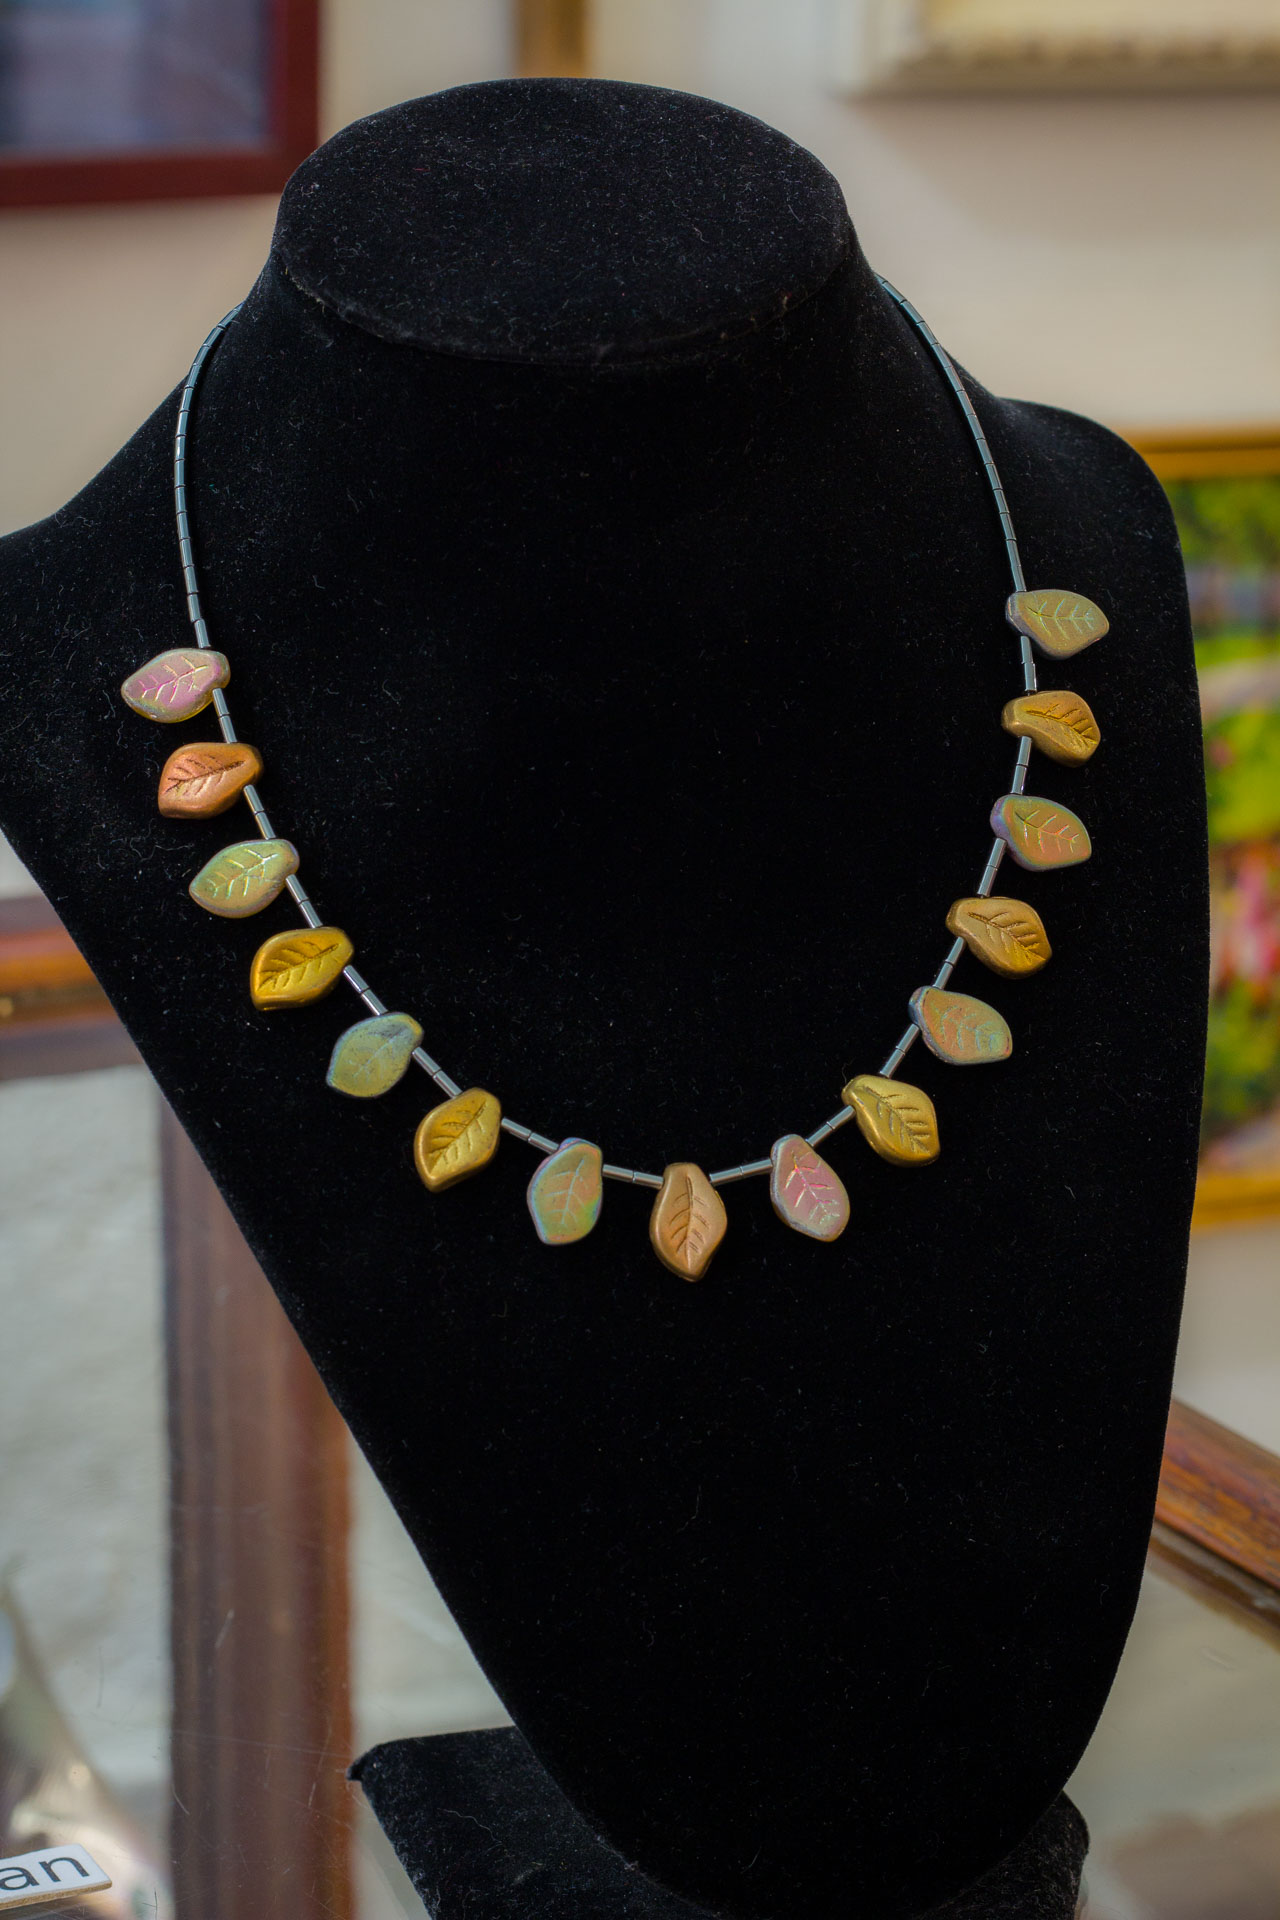 Necklace by Susie Hettleman